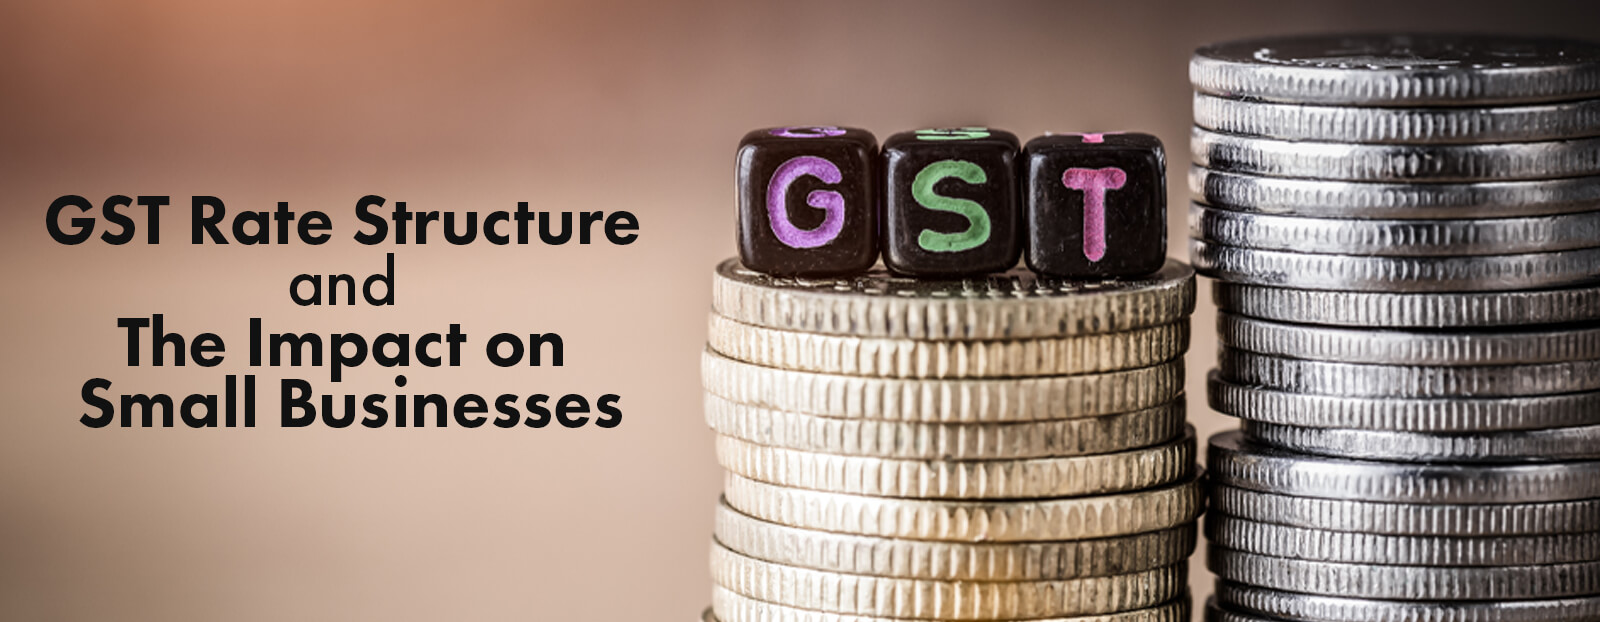 GST Rate Structure and The Impact on Small Businesses